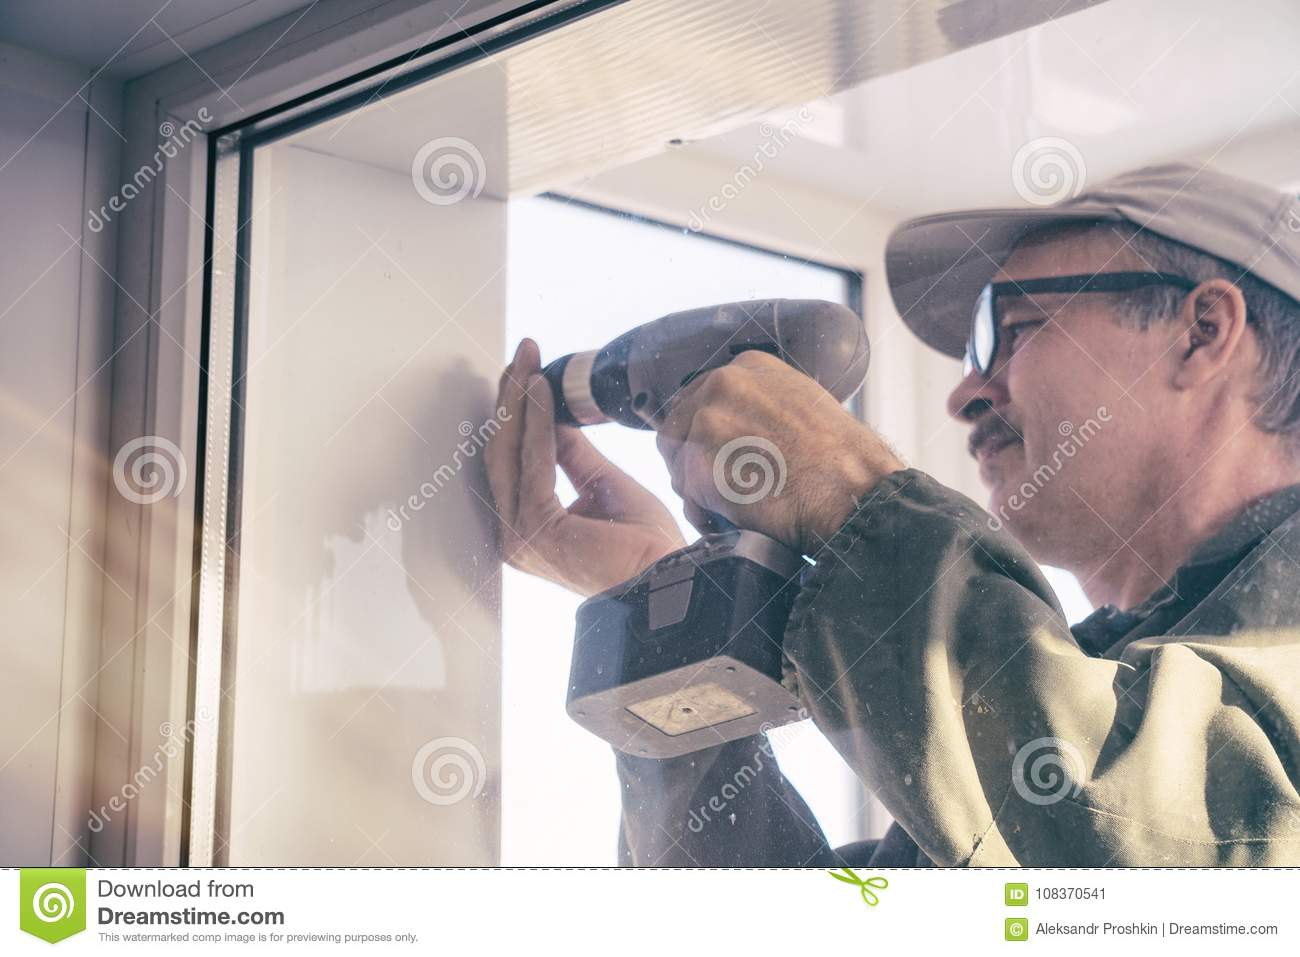 Carpenter in glasses with a drill